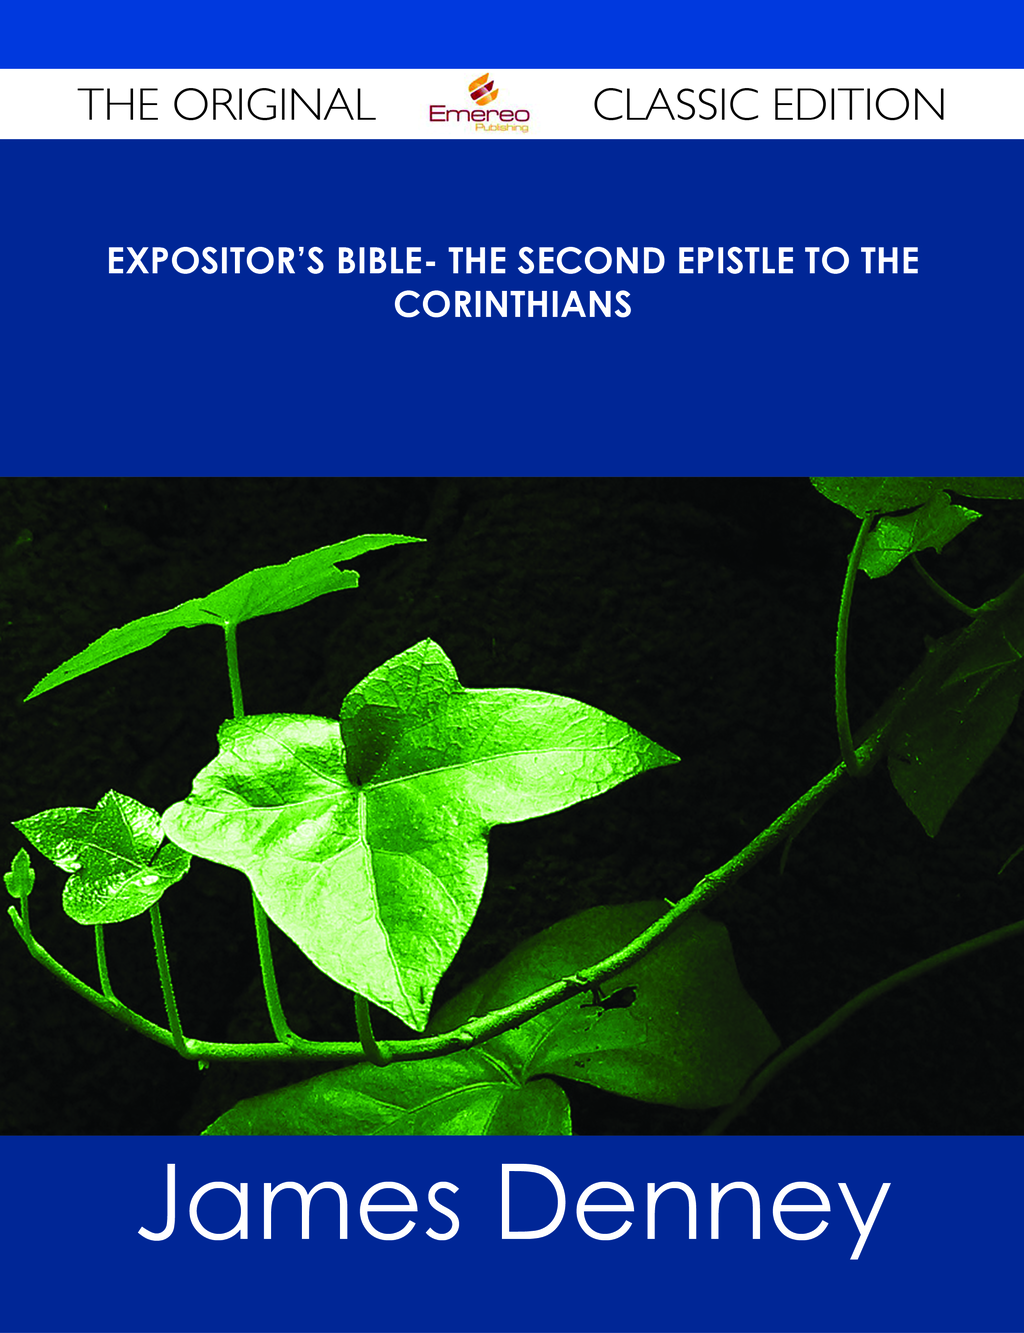 Expositor's Bible- The Second Epistle to the Corinthians - The Original Classic Edition